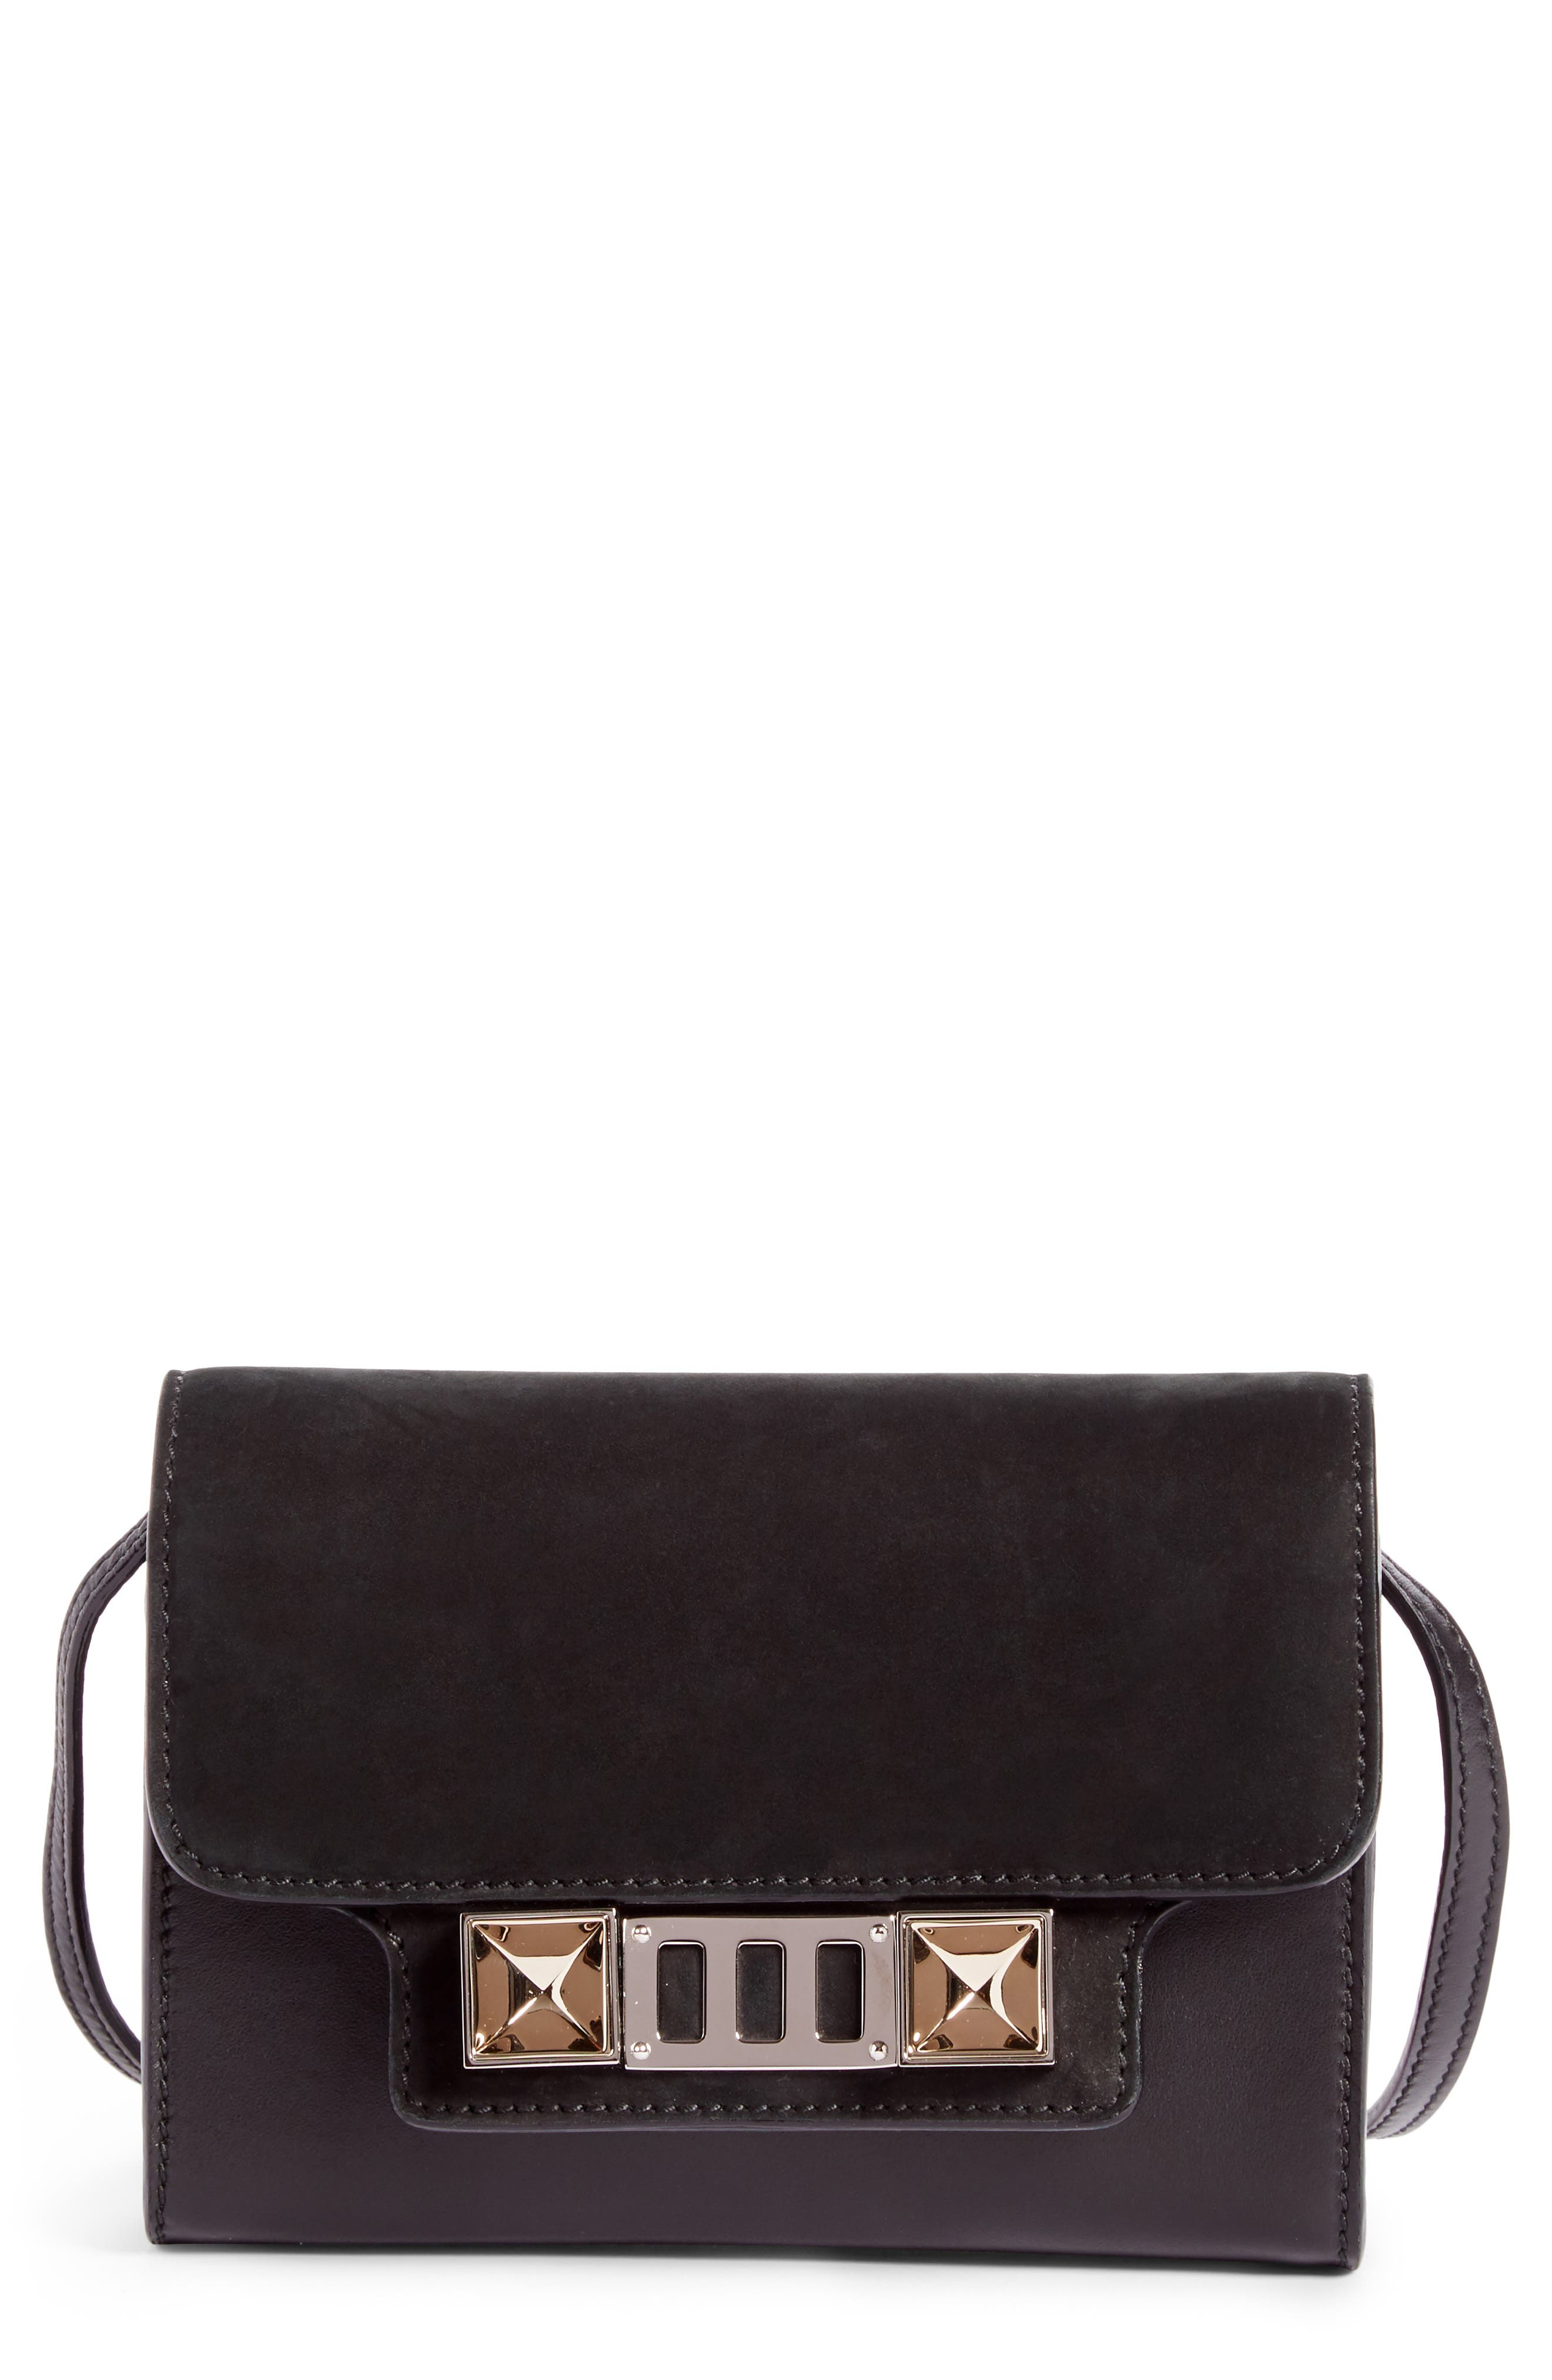 PS11 Calfskin Leather Crossbody Wallet,                         Main,                         color, Black